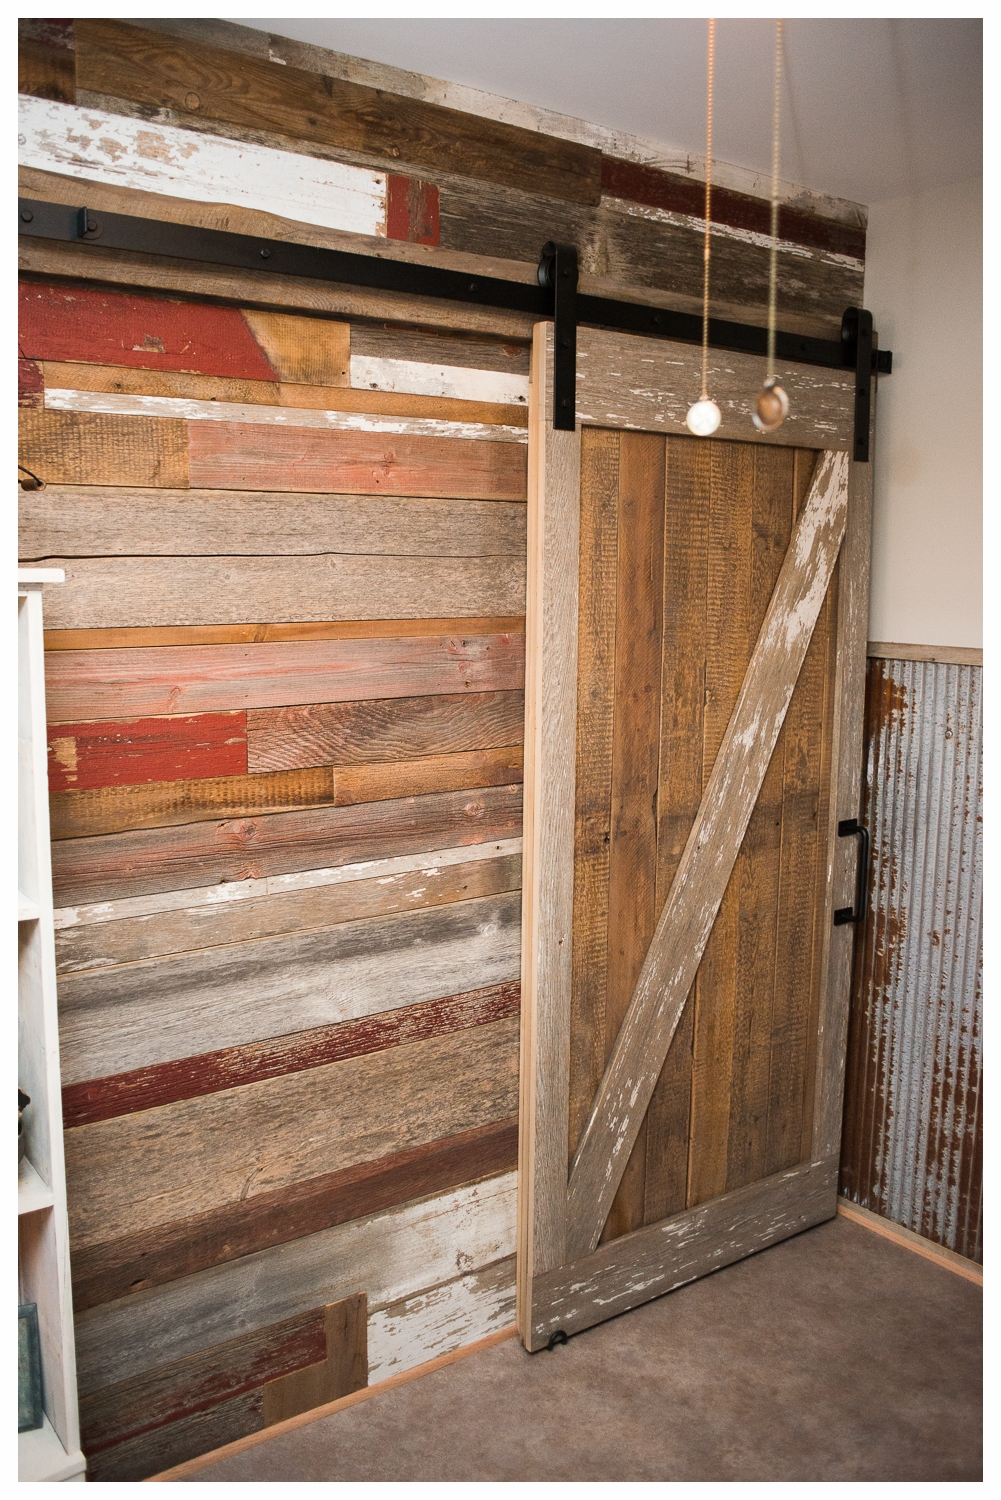 A sliding custom barn door rests against a rich patchwork of different barn wood planks.